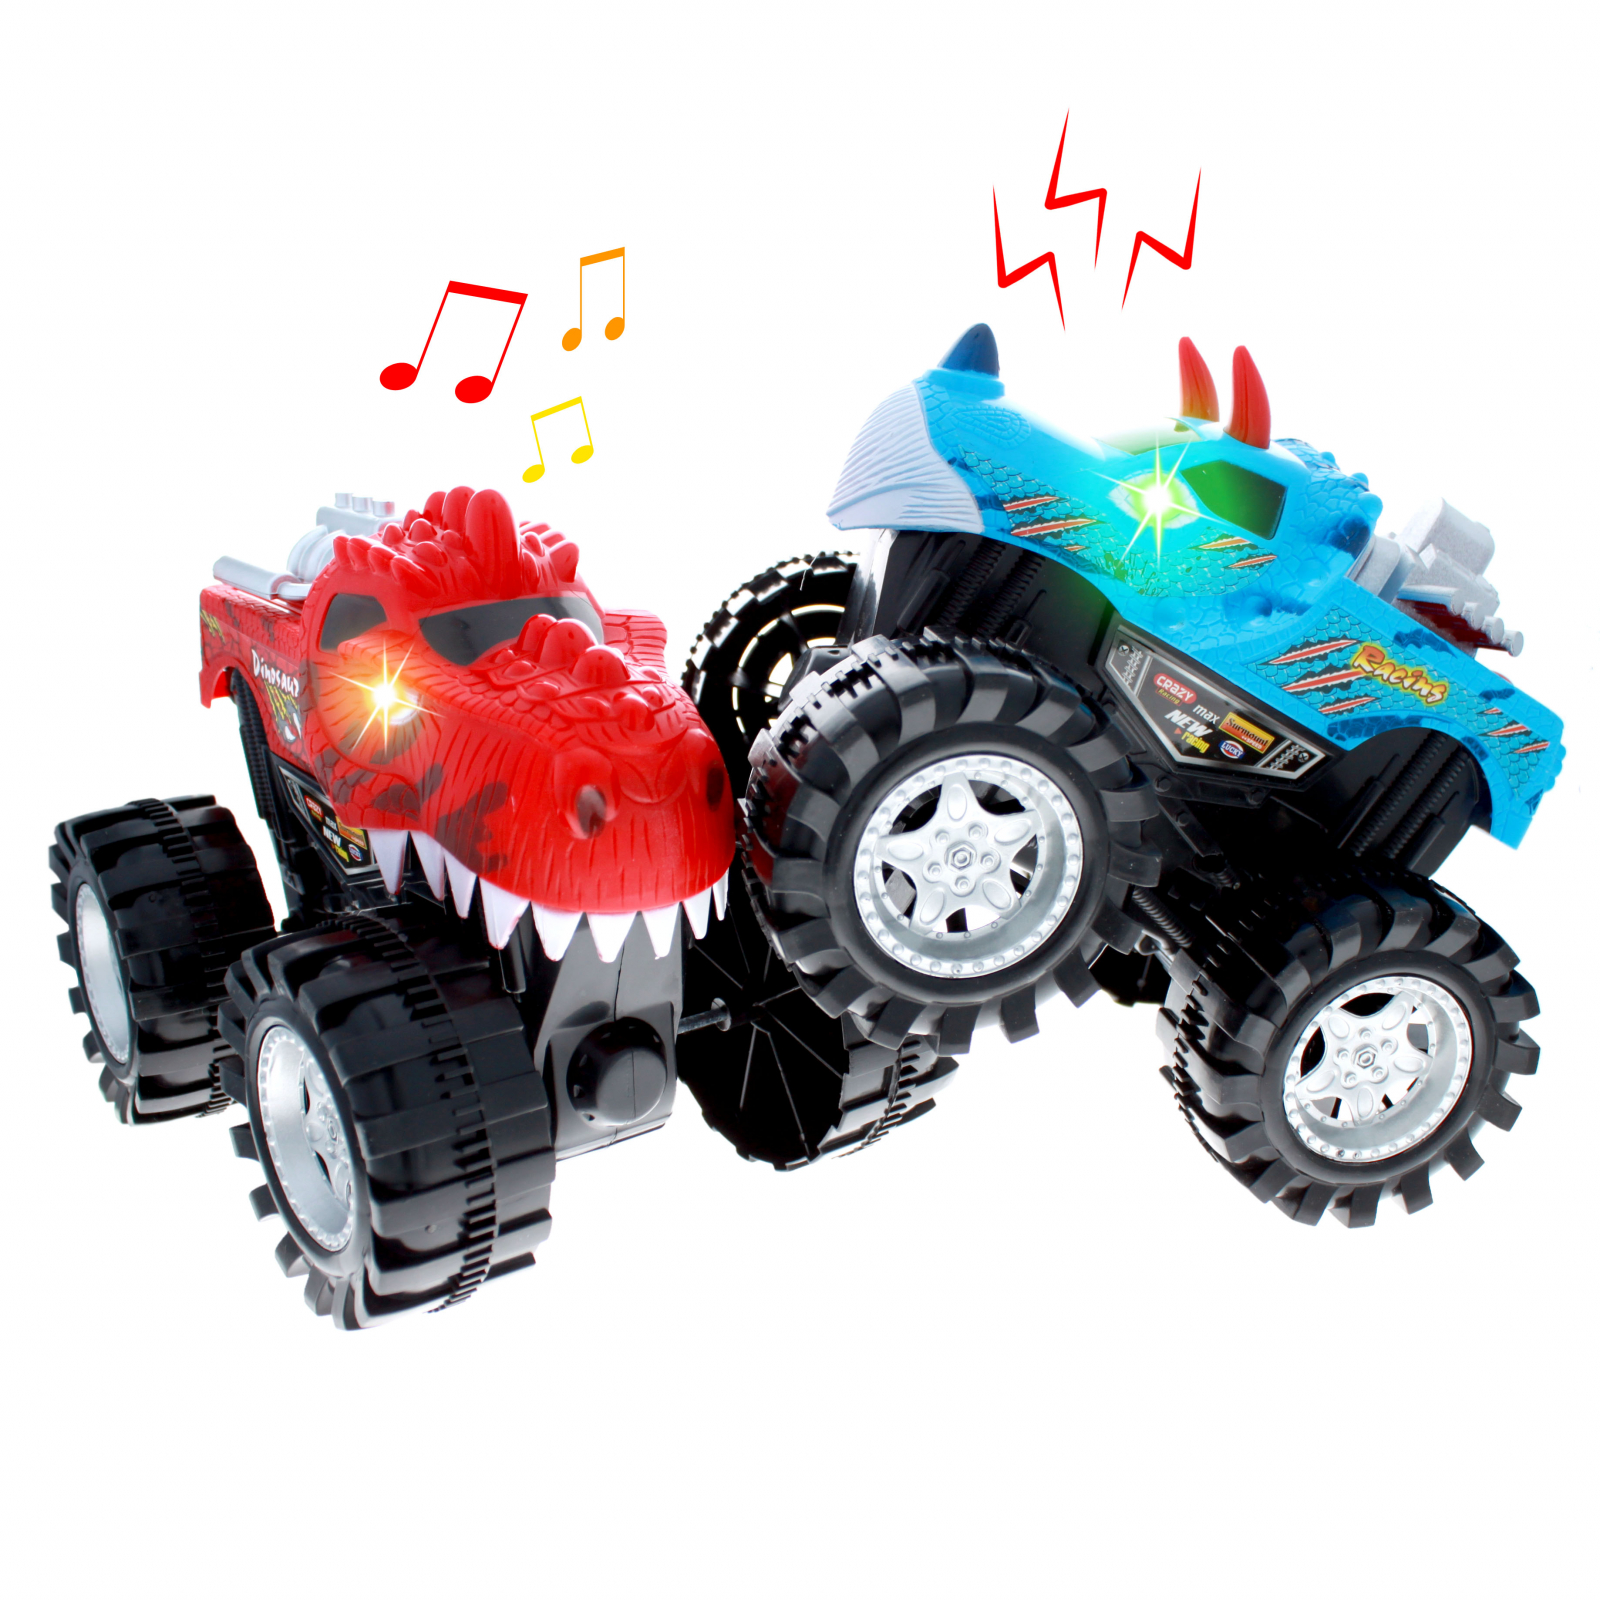 TychoTyke Kids Friction Power Monster Truck 2pk Red and Blue